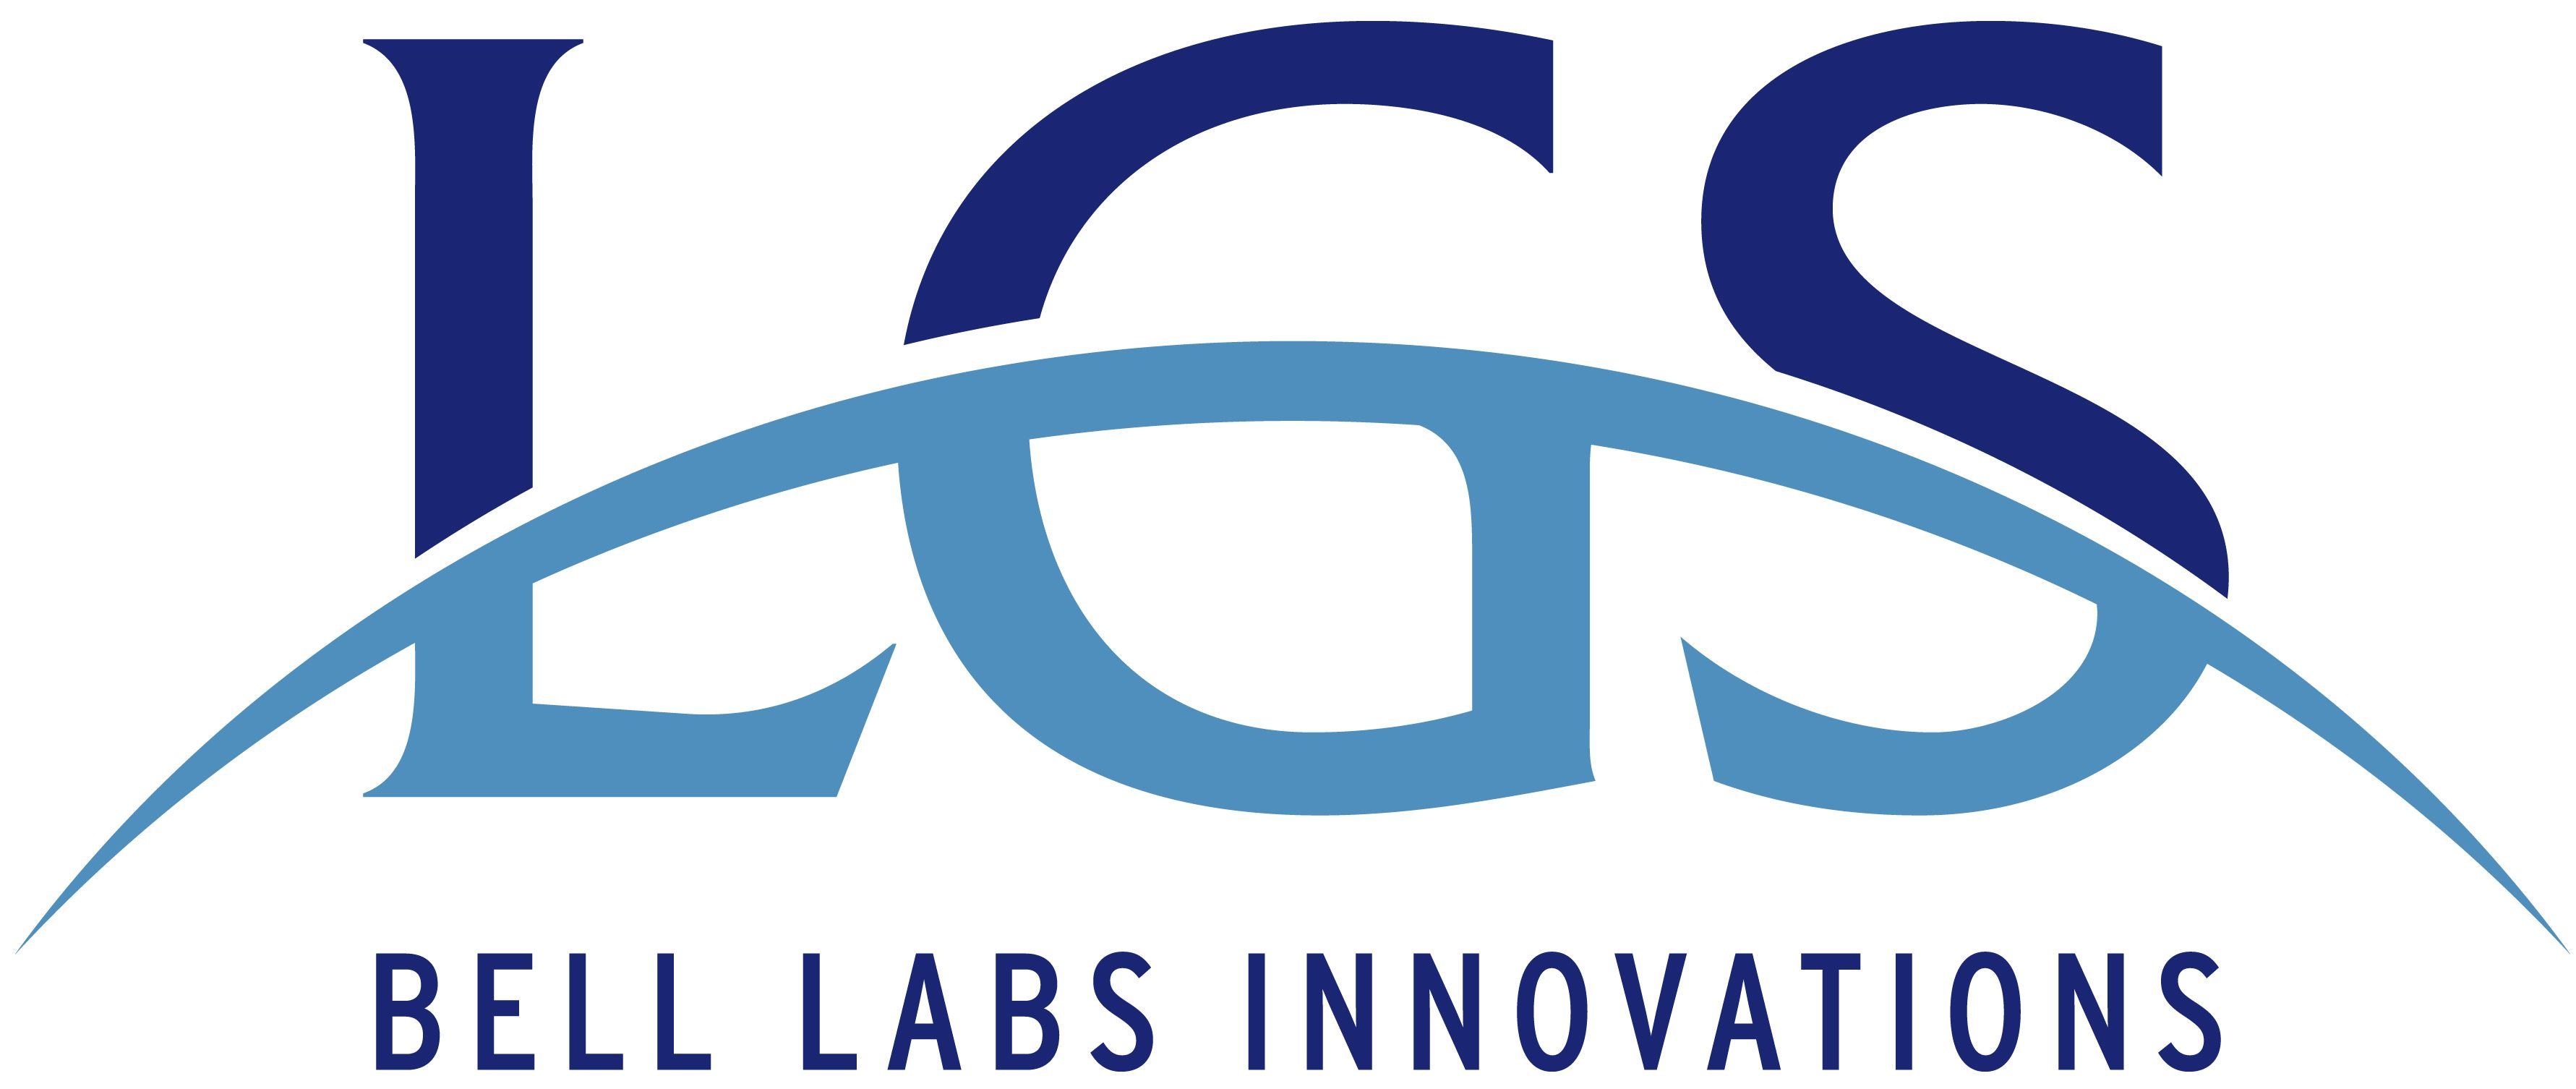 Lgs Innovations Has The Flexibility Entrepreneurial Spirit And Opportunities For Growth That Are The Adv Company Culture Computer Engineering Computer Science